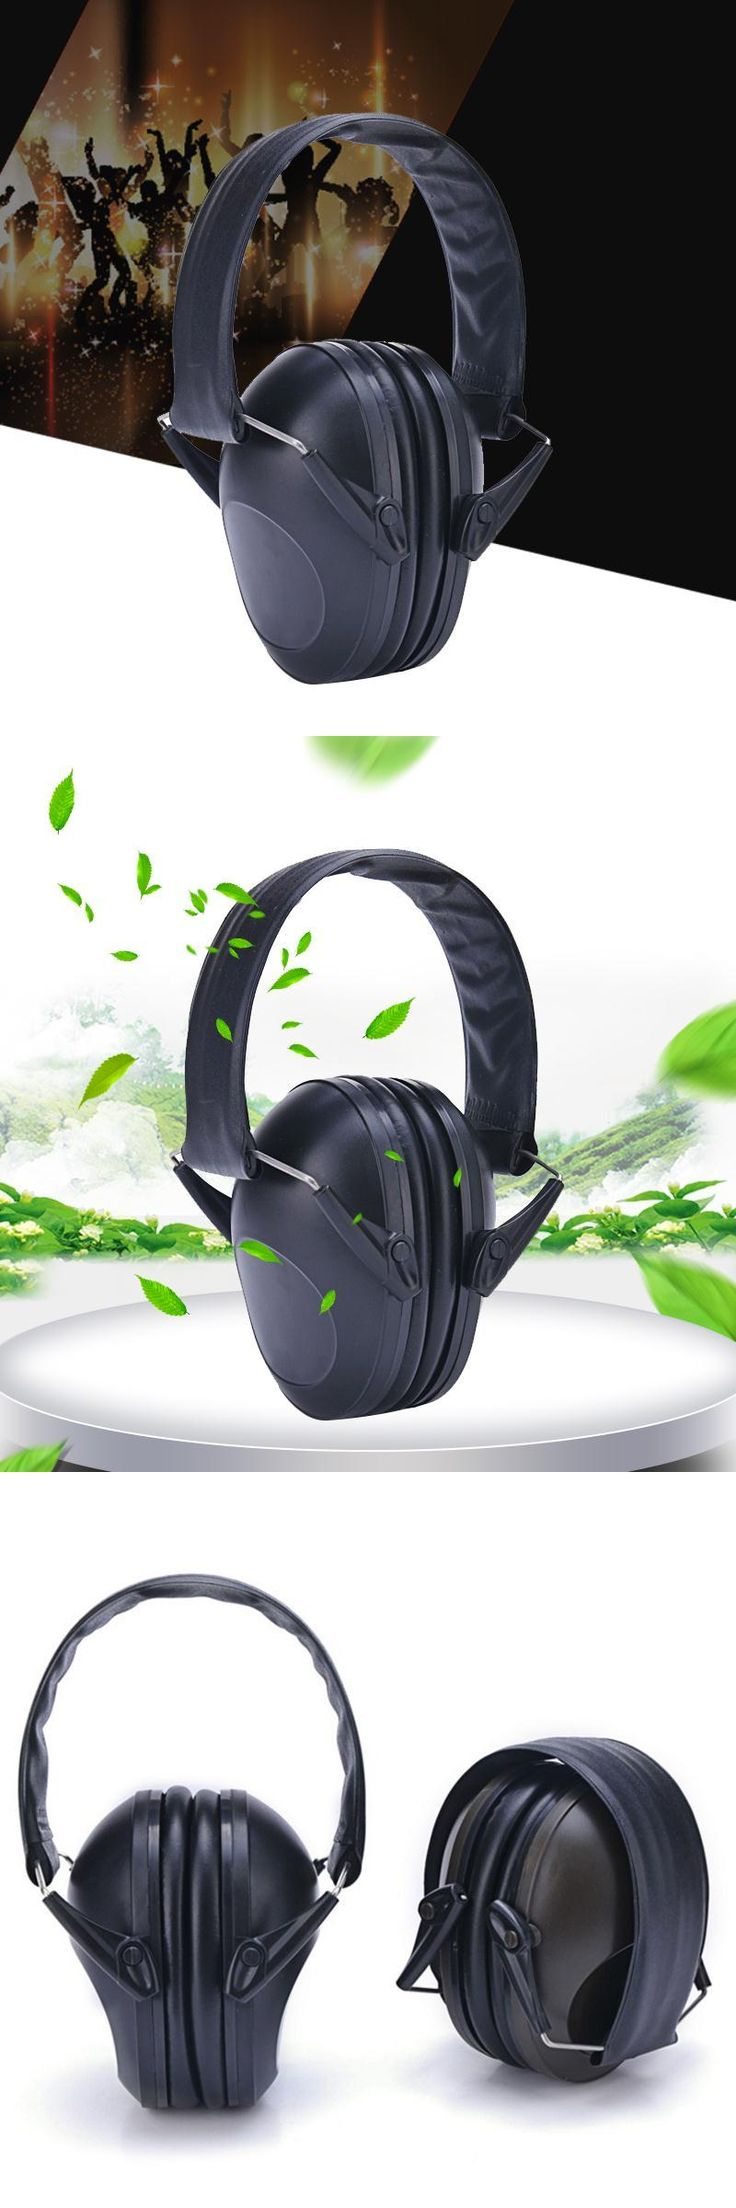 [Visit to Buy] Professinal design Ear Muff Outdoor Shooting Hearing Ear Protection peltor Ear Protectors Soundproof Shooting Earmuffs #Advertisement